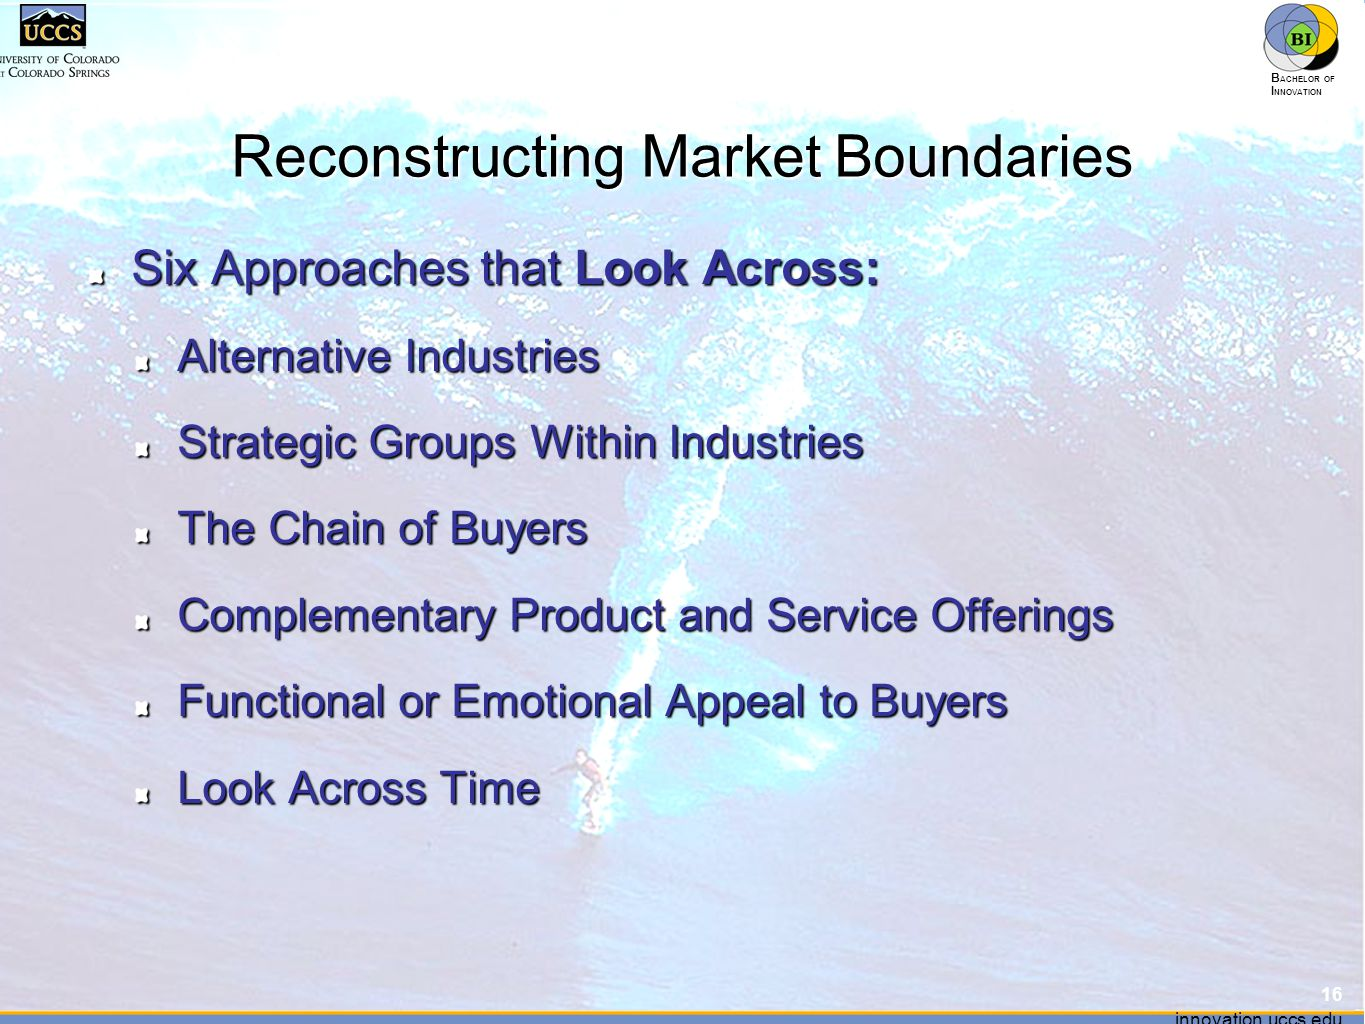 innovation.uccs.edu B ACHELOR OF I NNOVATION ™ innovation.uccs.edu B ACHELOR OF I NNOVATION ™ Reconstructing Market Boundaries Six Approaches that Look Across: Alternative Industries Strategic Groups Within Industries The Chain of Buyers Complementary Product and Service Offerings Functional or Emotional Appeal to Buyers Look Across Time 16